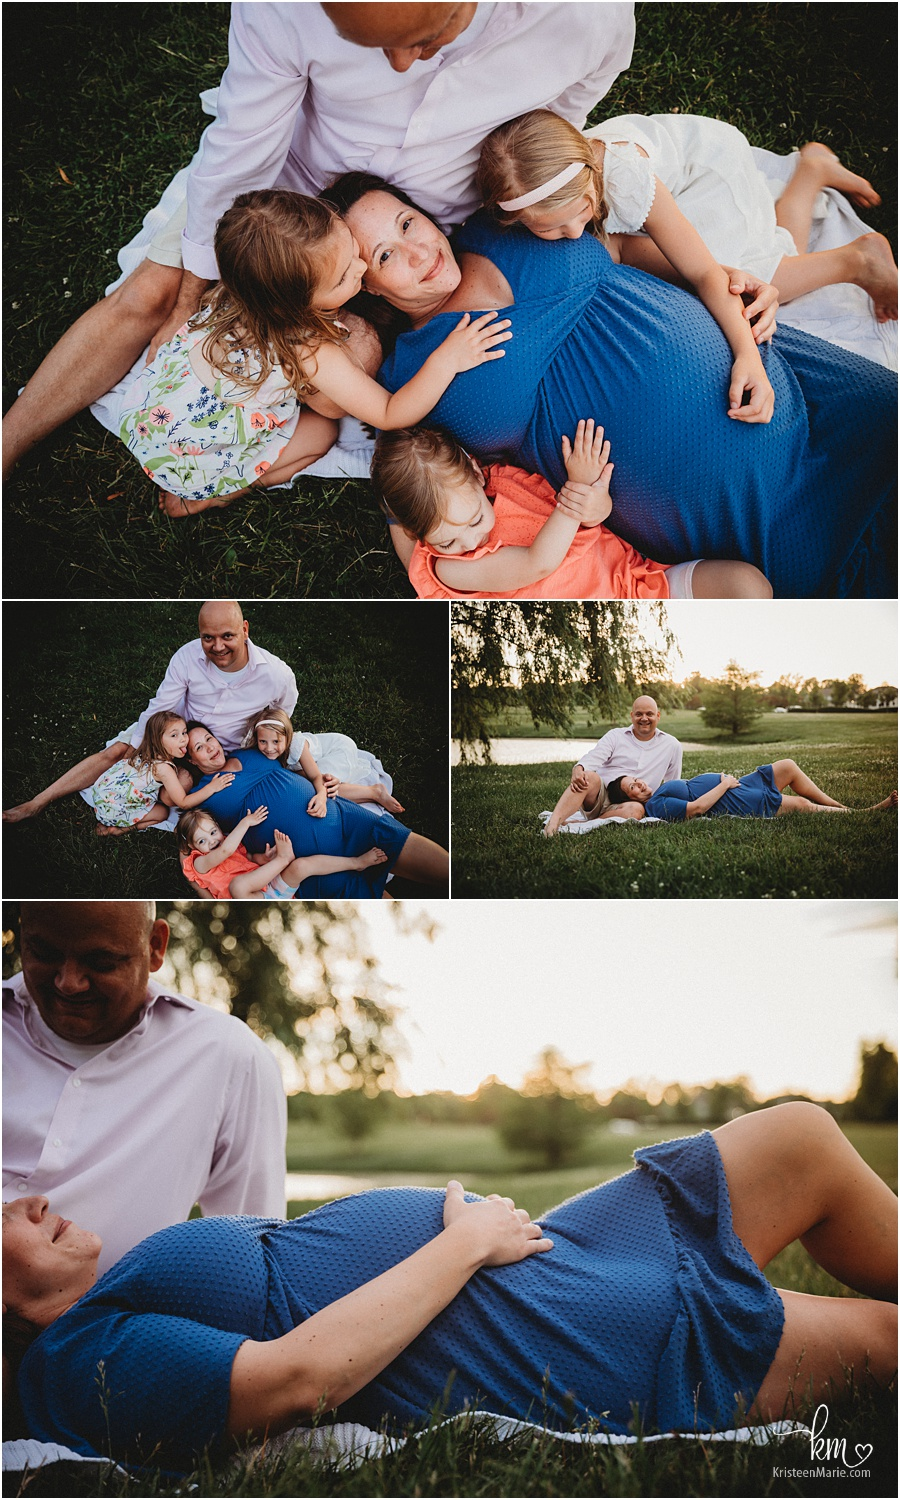 cuddled up - outdoor laying pose maternity photography